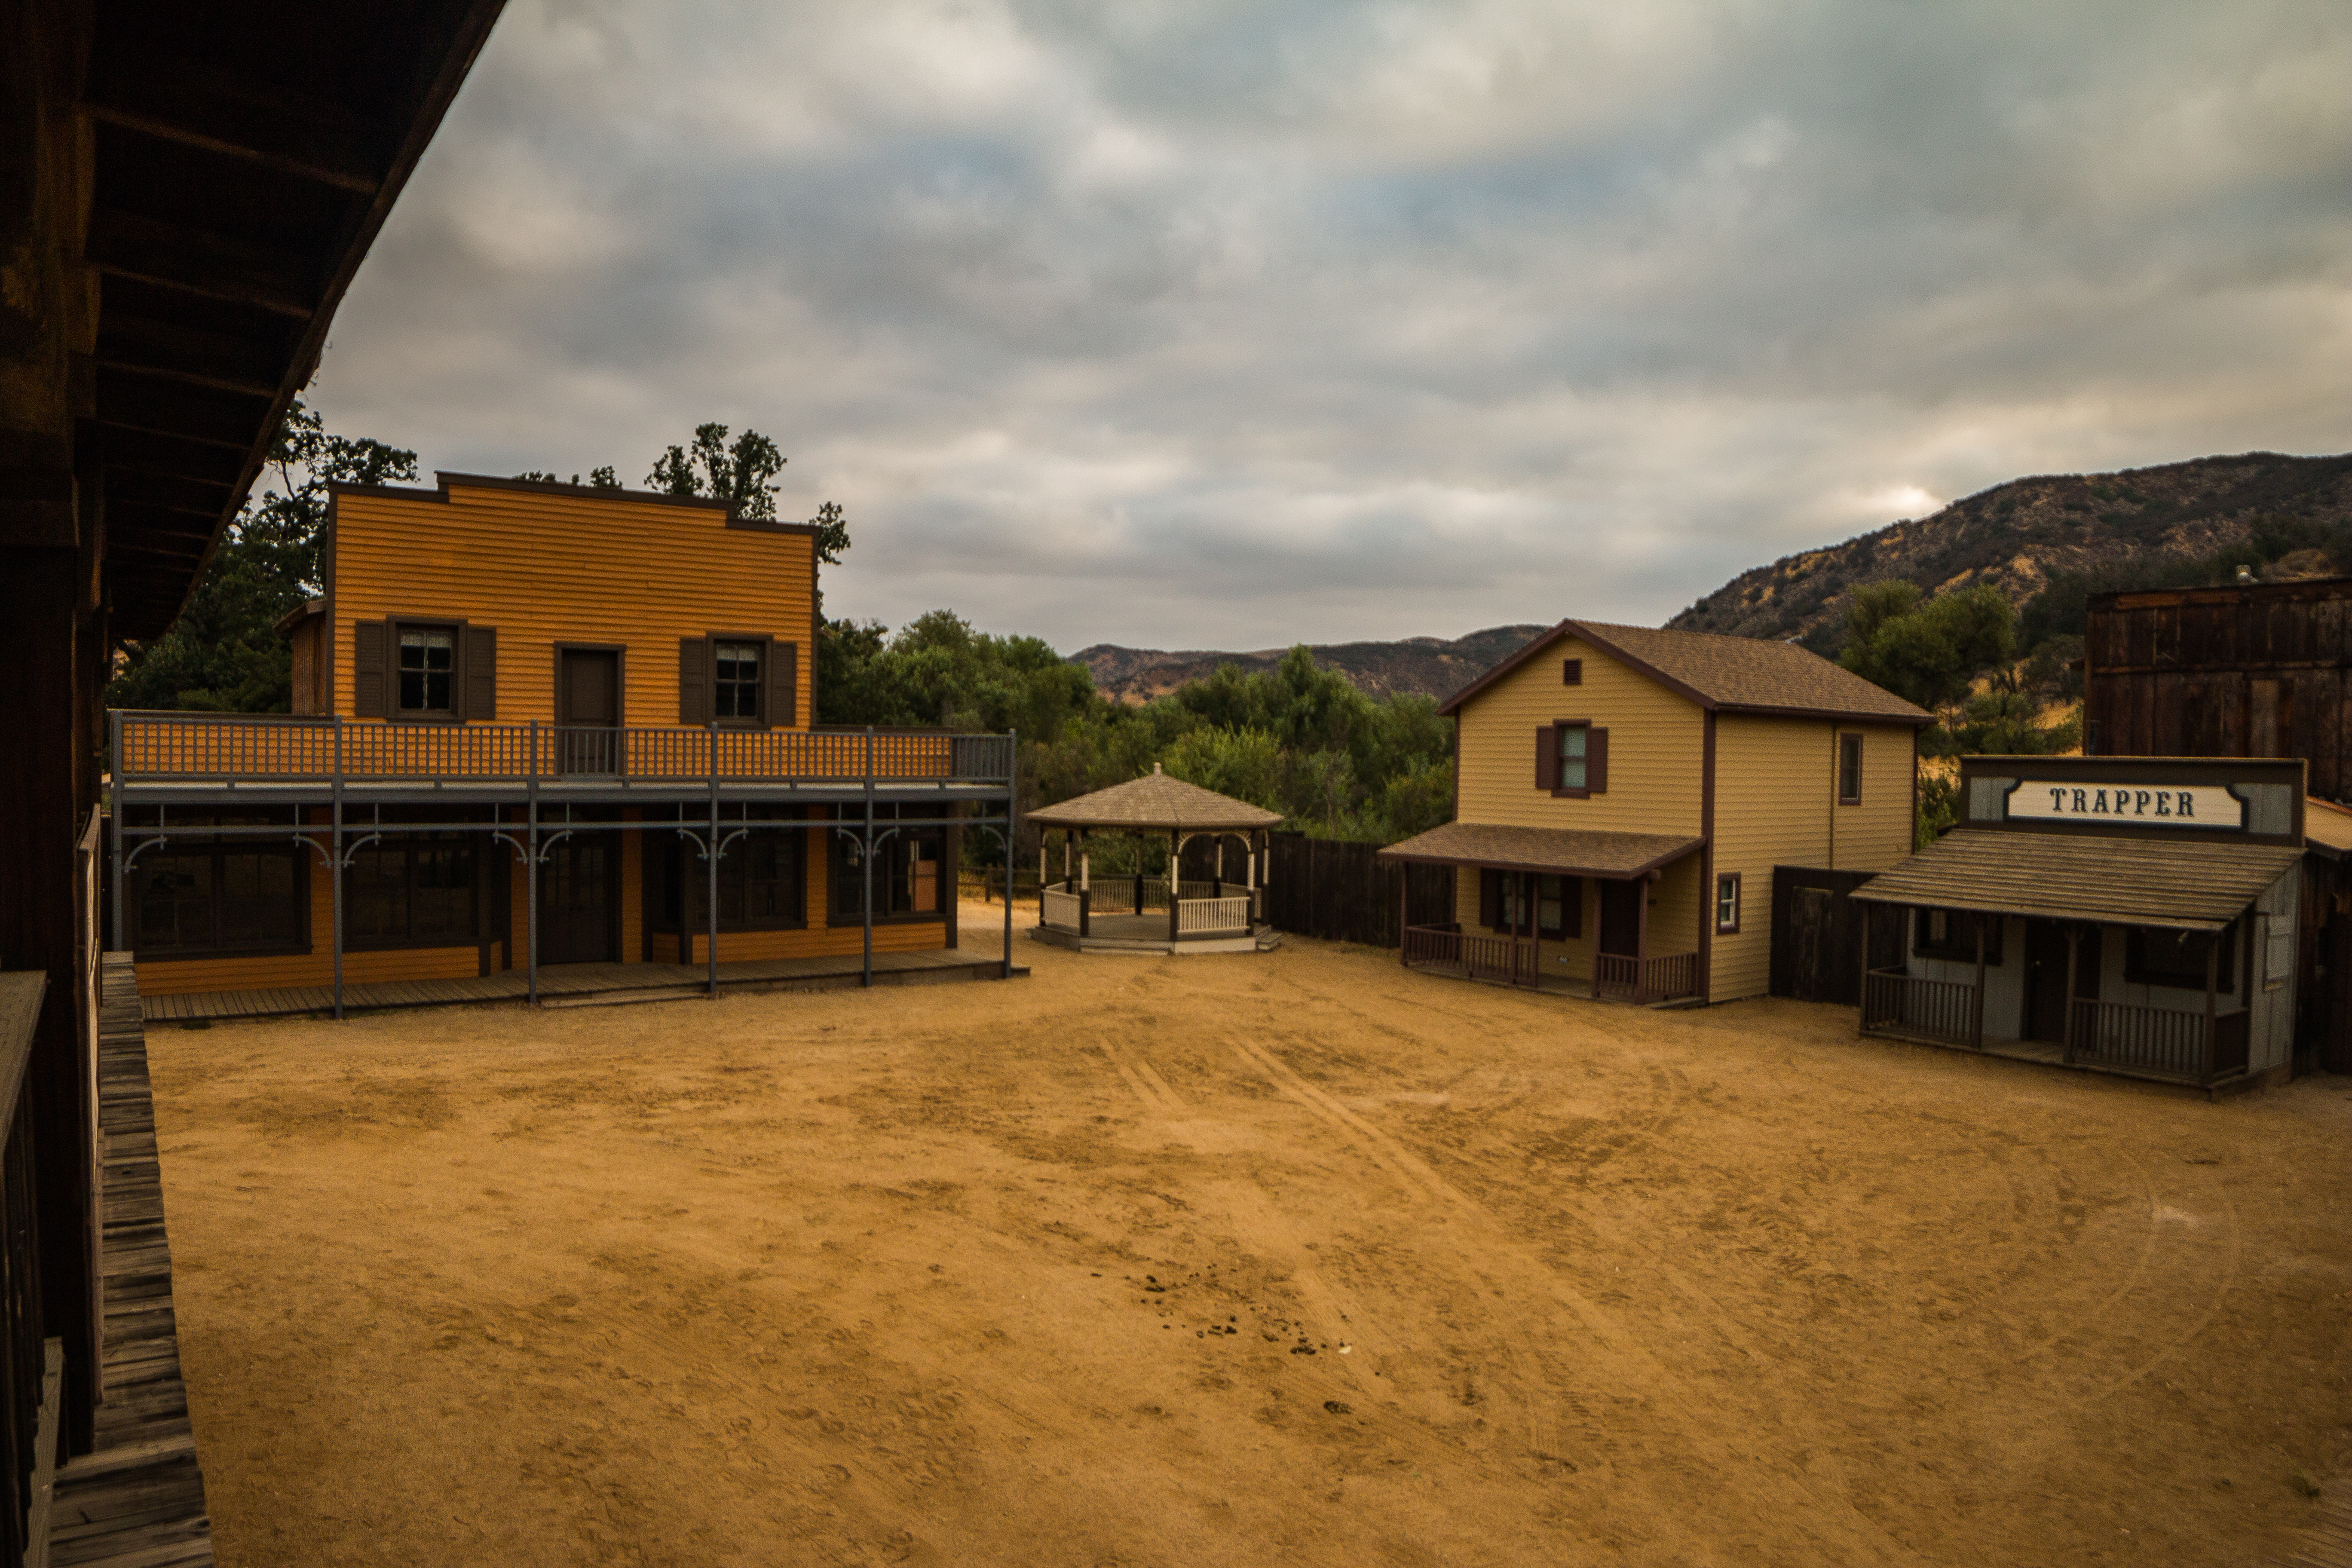 An Aug. 16, 2017, photo shows part of the Western Town at Paramount Ranch. (Credit: National Park Service)